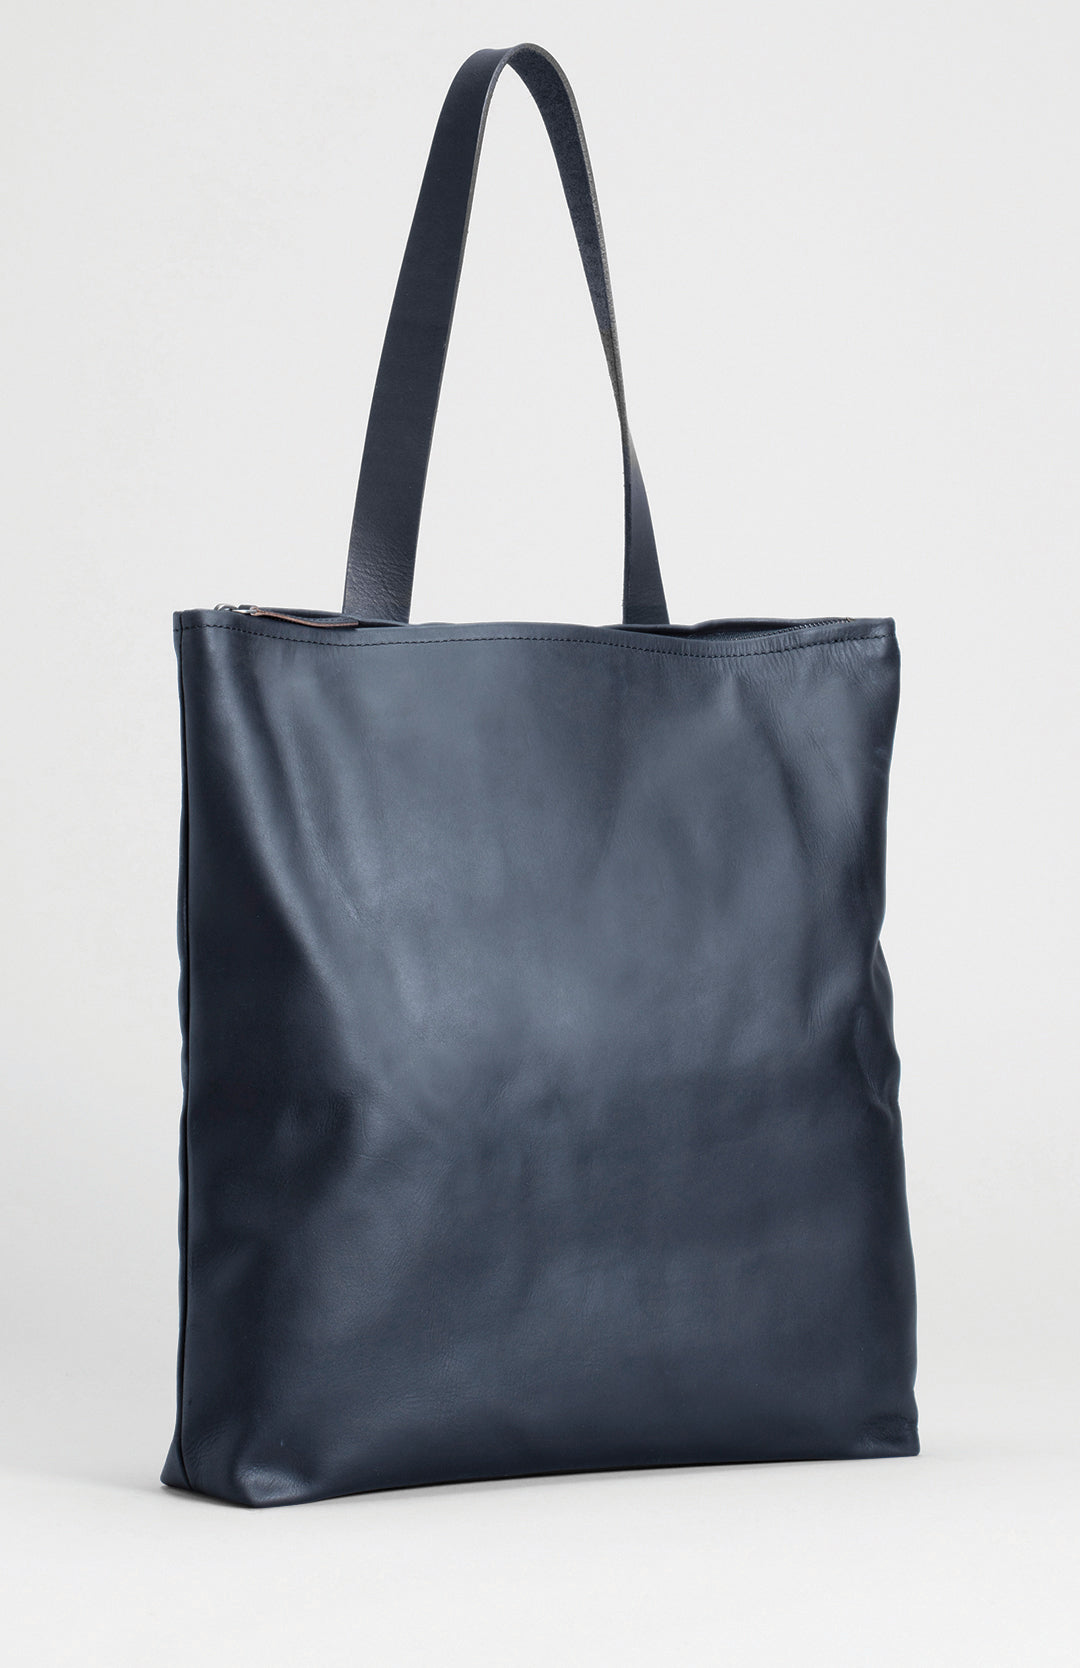 ELK FULBY LARGE LEATHER TOTE